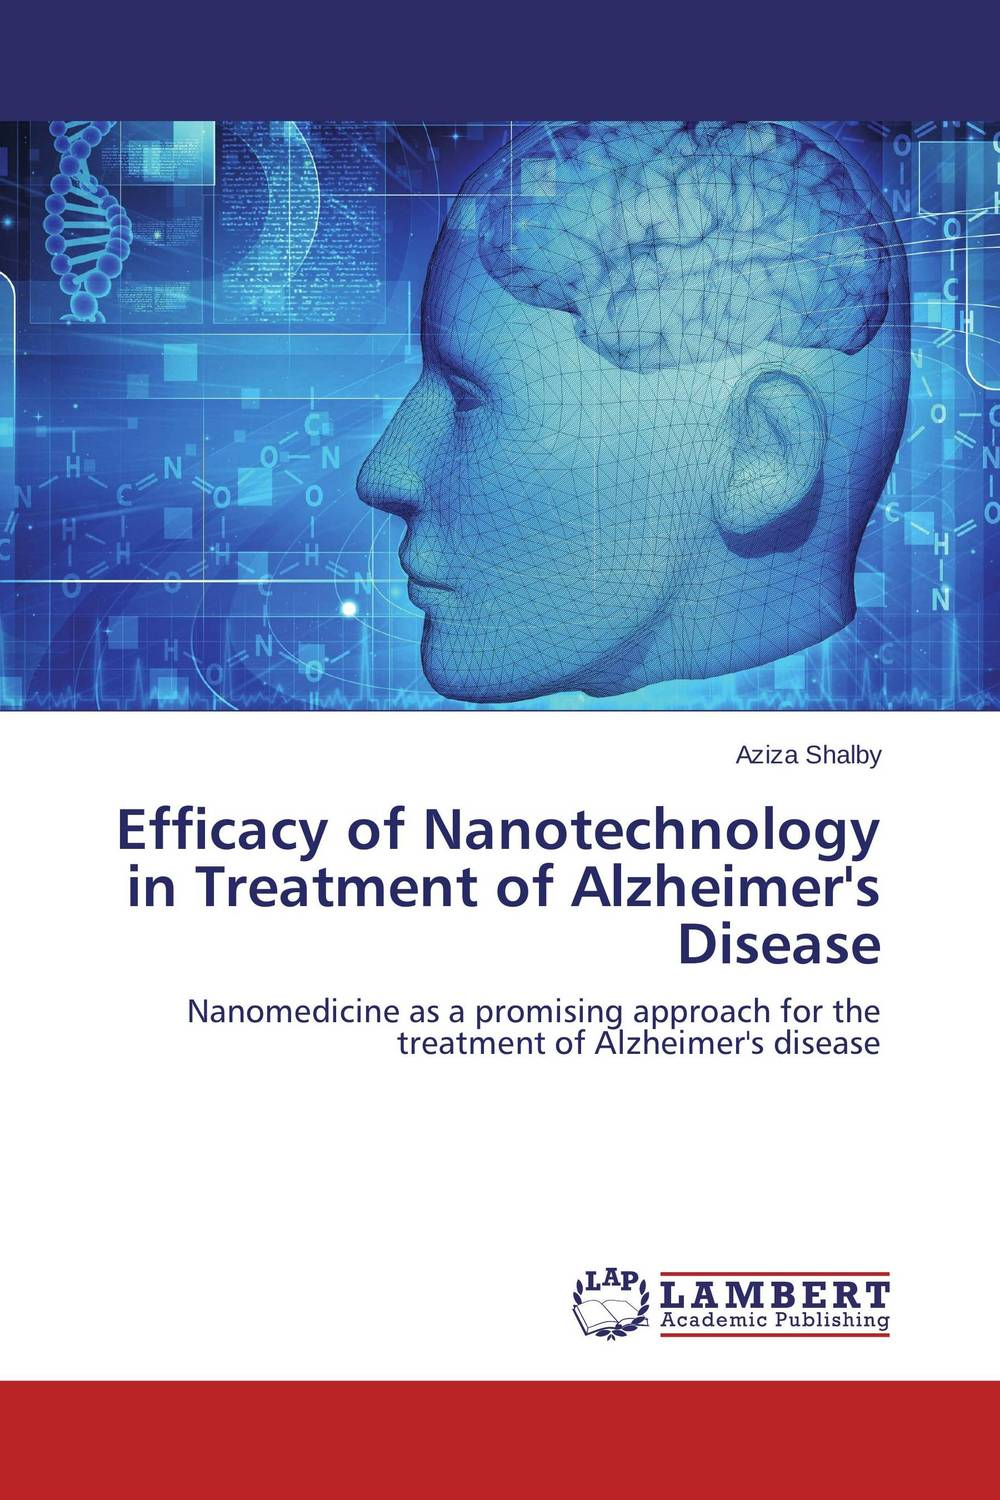 Efficacy of Nanotechnology in Treatment of Alzheimer's Disease